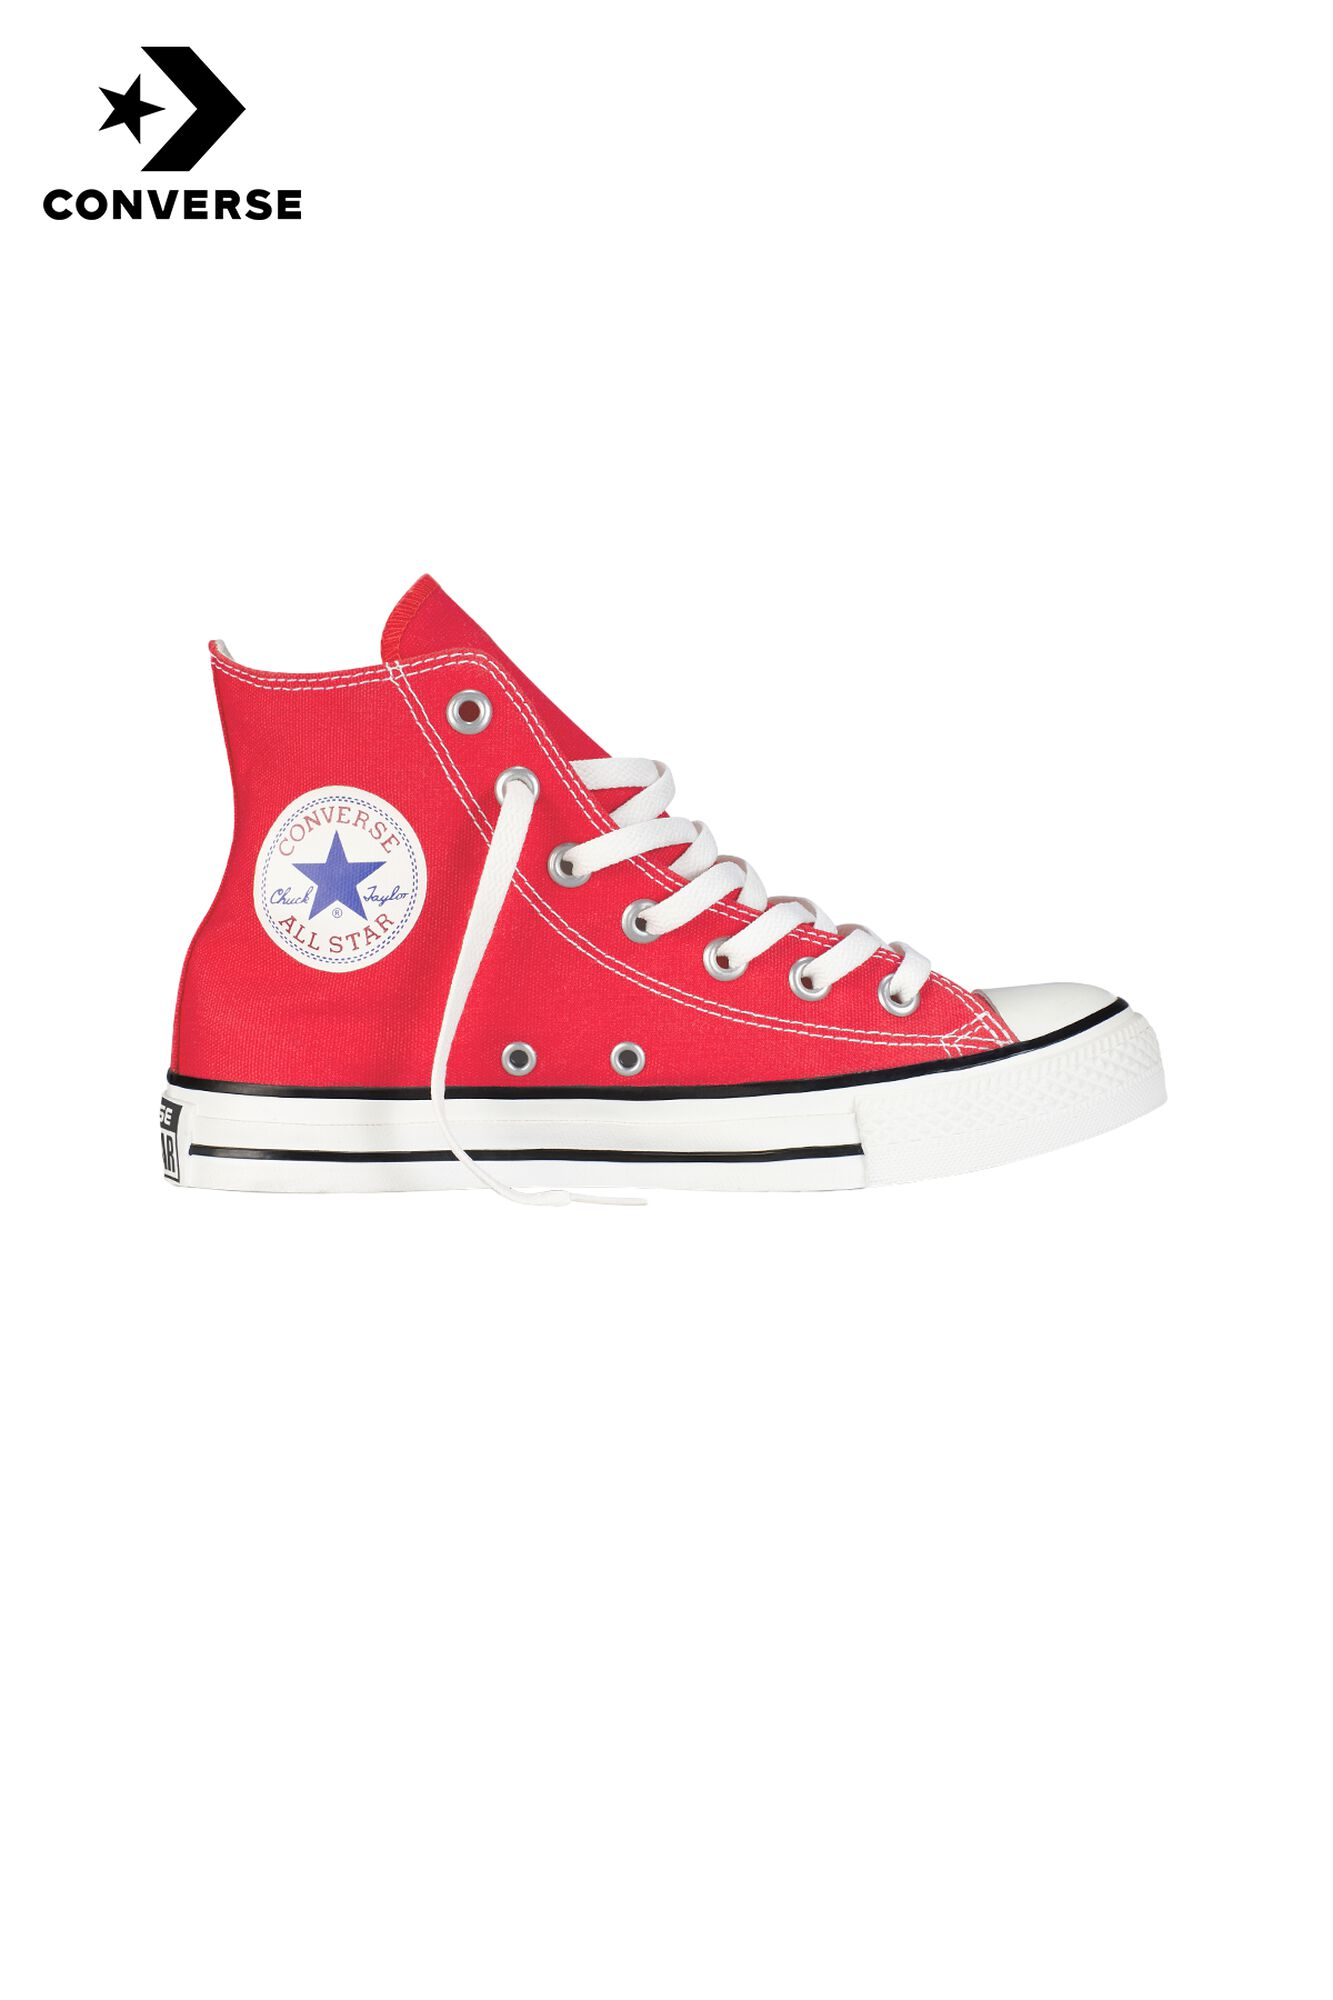 99b08e199c89 Men Converse All Stars High Red Buy Online